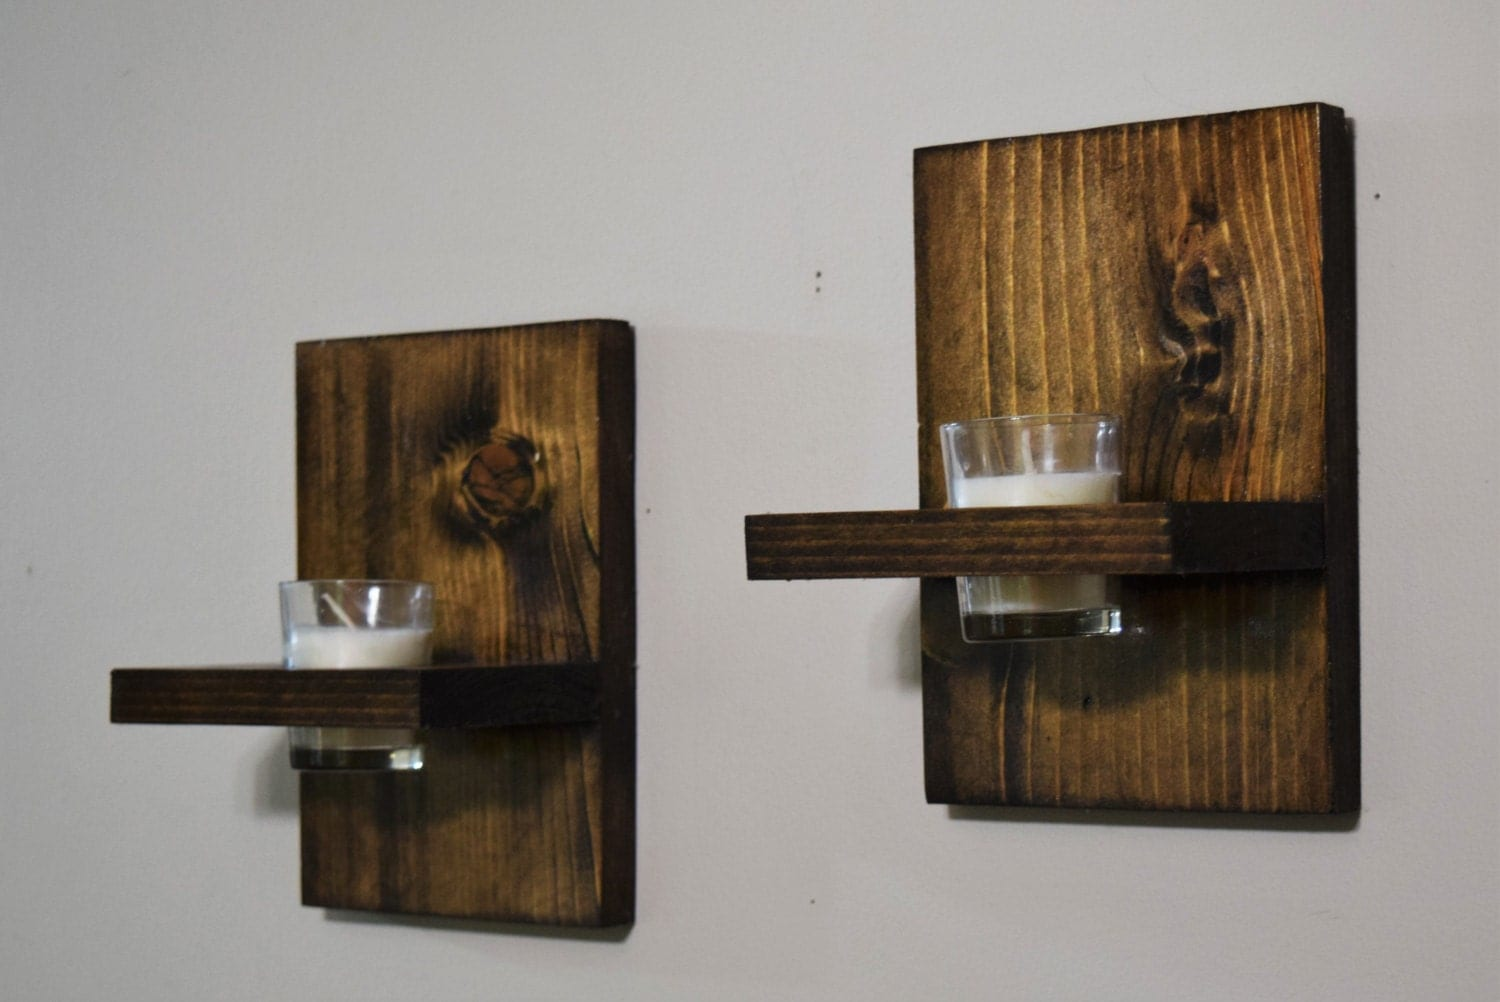 candle sconce wall sconce bathroom decor rustic candle